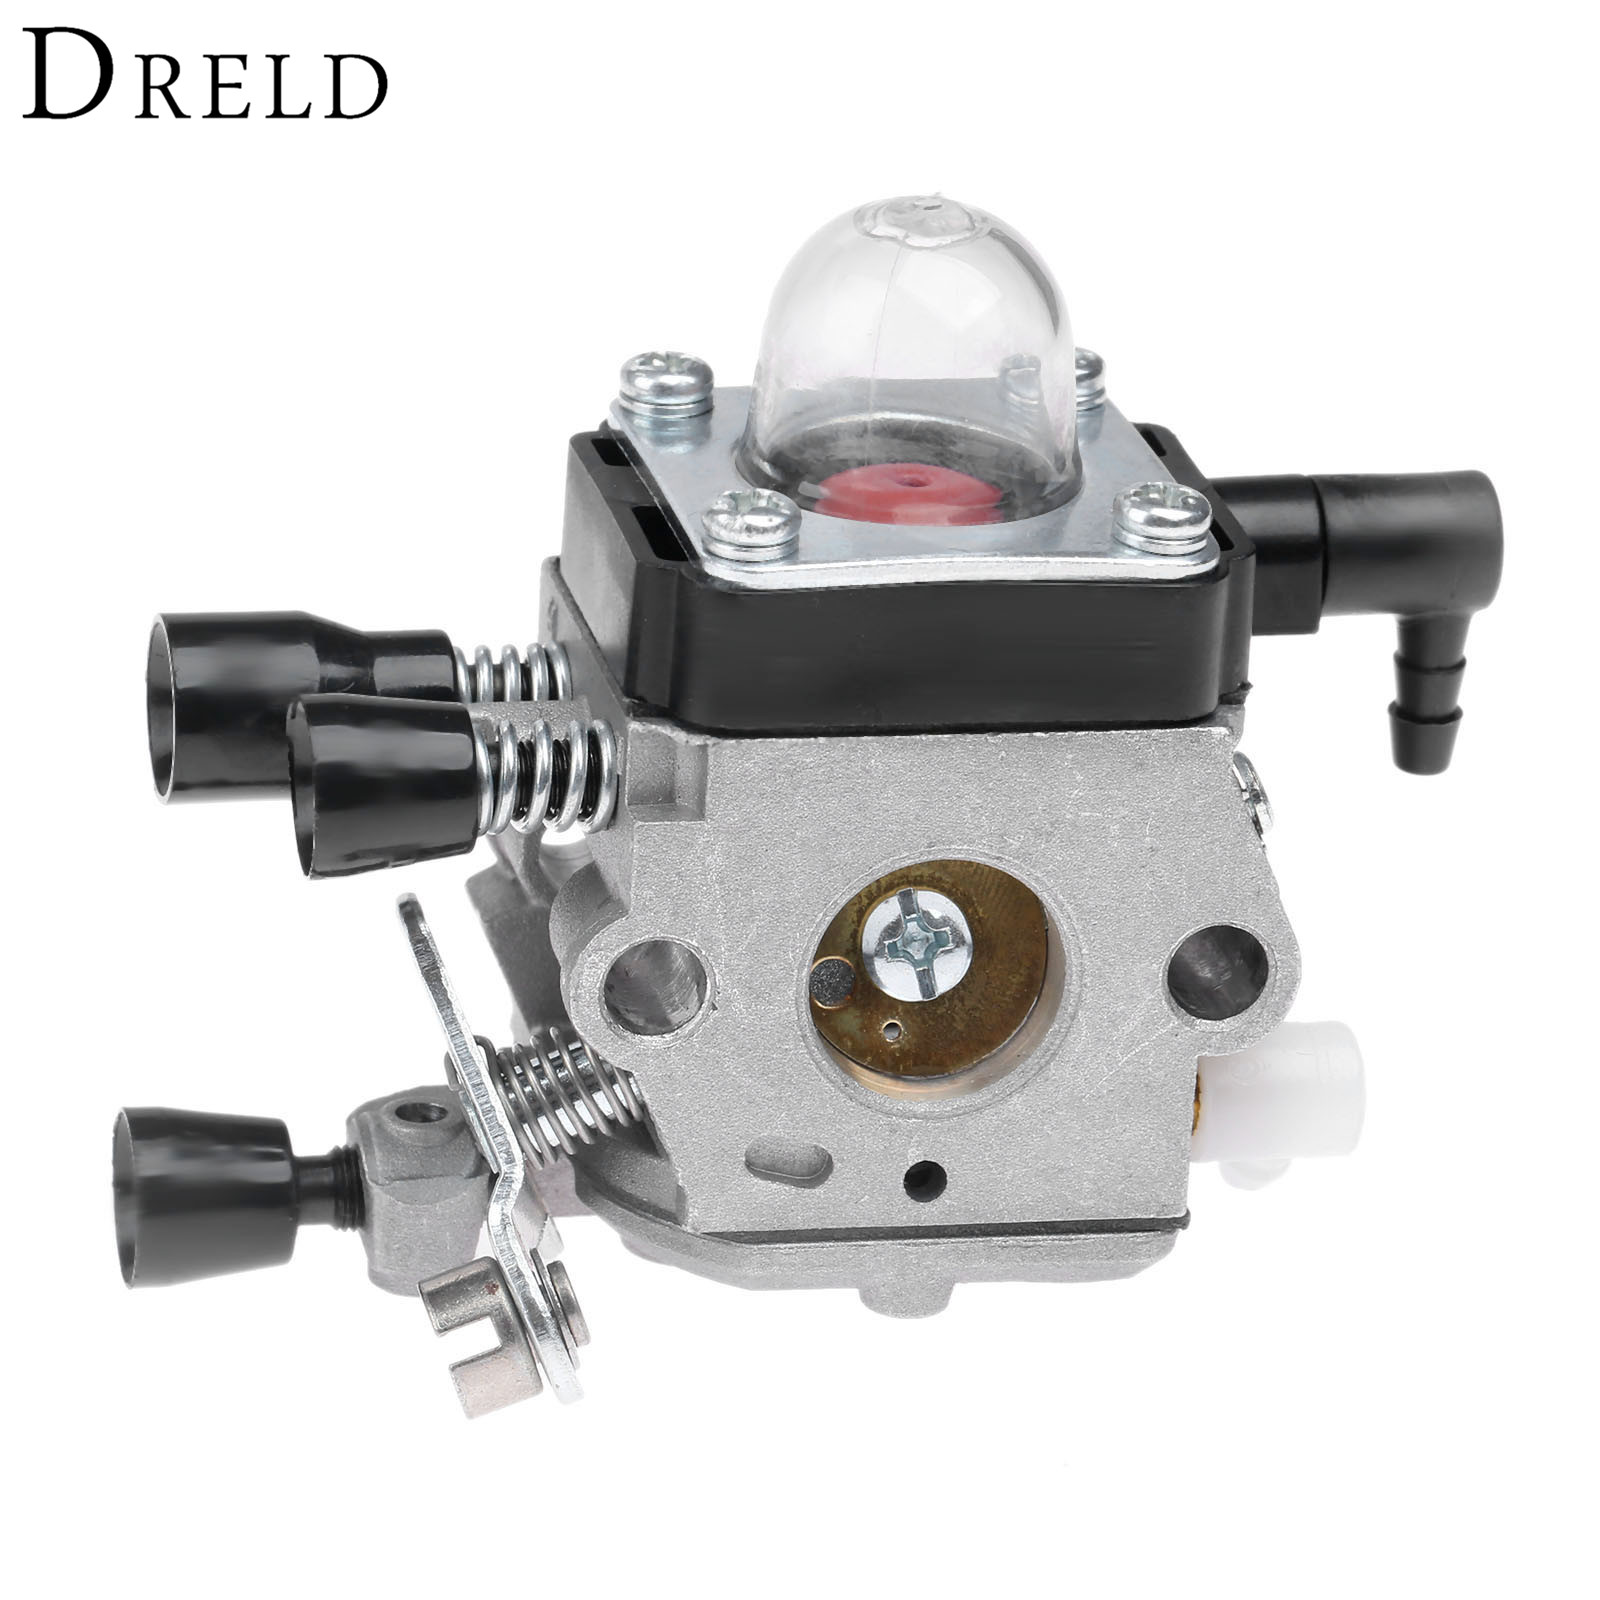 DRELD Chainsaws Carburetor Carby Replace for <font><b>Stihl</b></font> <font><b>FS38</b></font> FS45 FS46 FS46 FS55 HL45 FC55 Fit for Zama C1Q-S186 Chainsaws Spare Part image